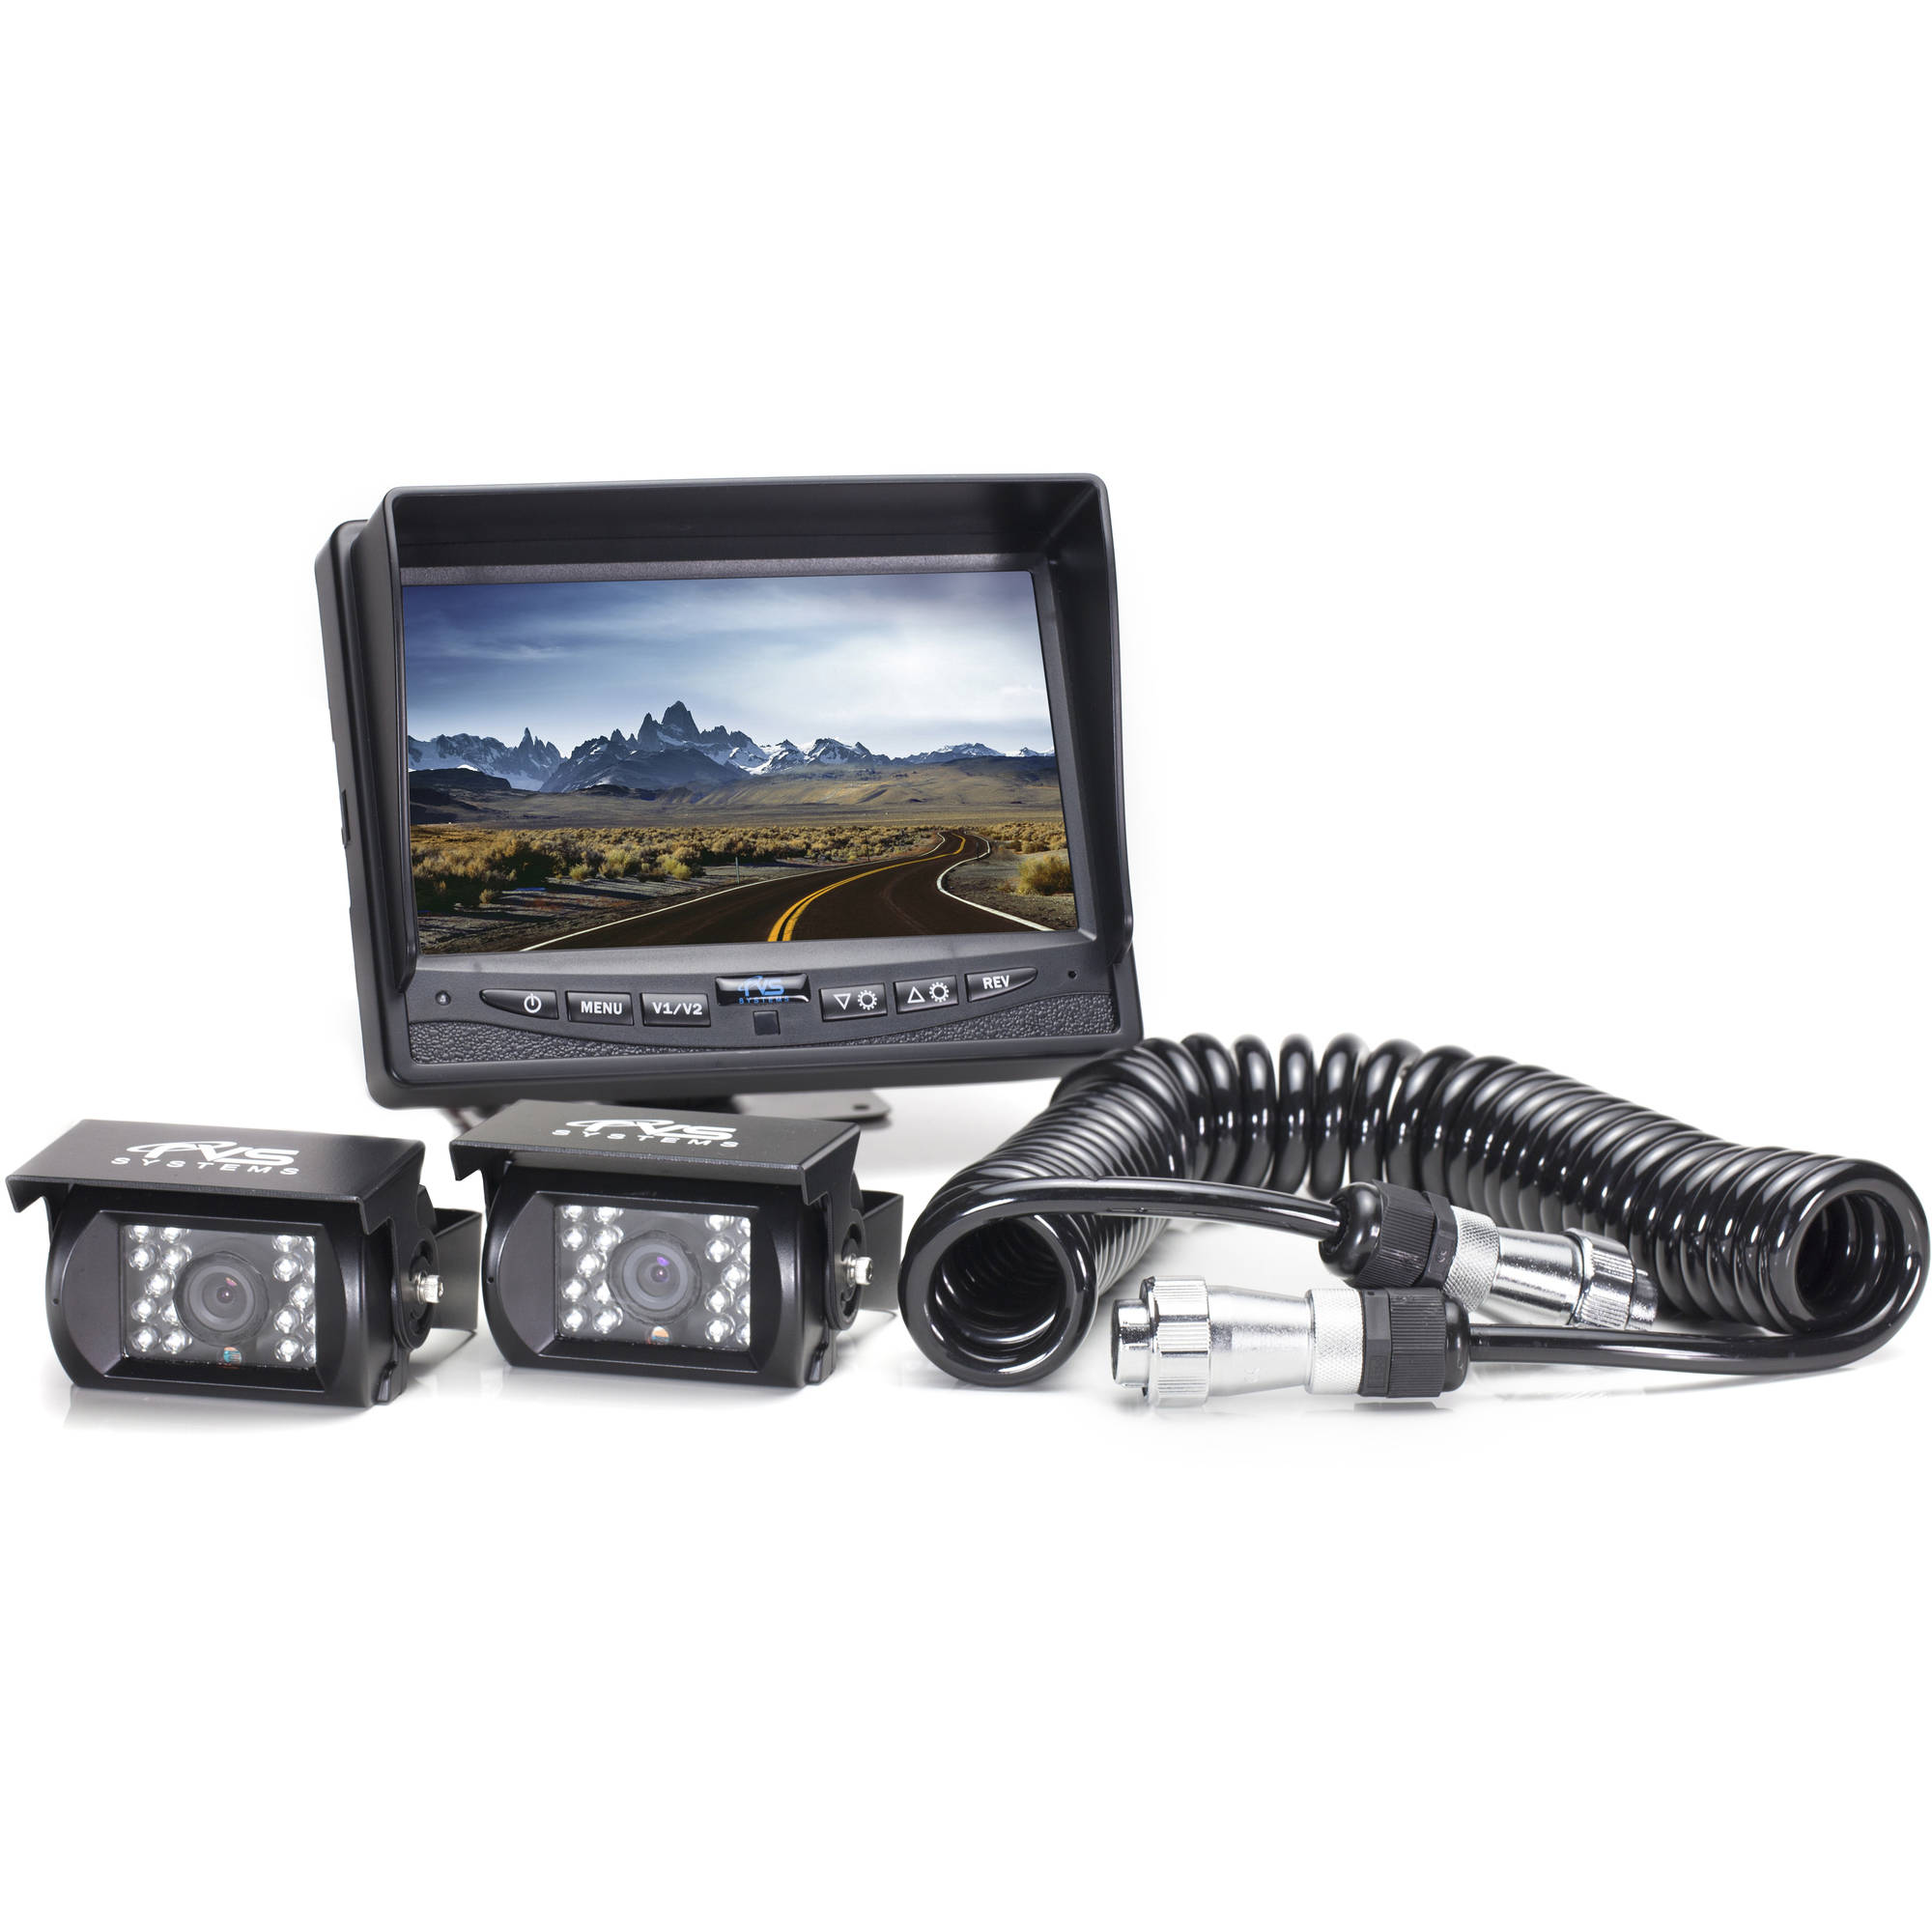 Rear View Camera System, 2 Camera Setup with Trailer Tow Quick Connect/Disconnect Kit